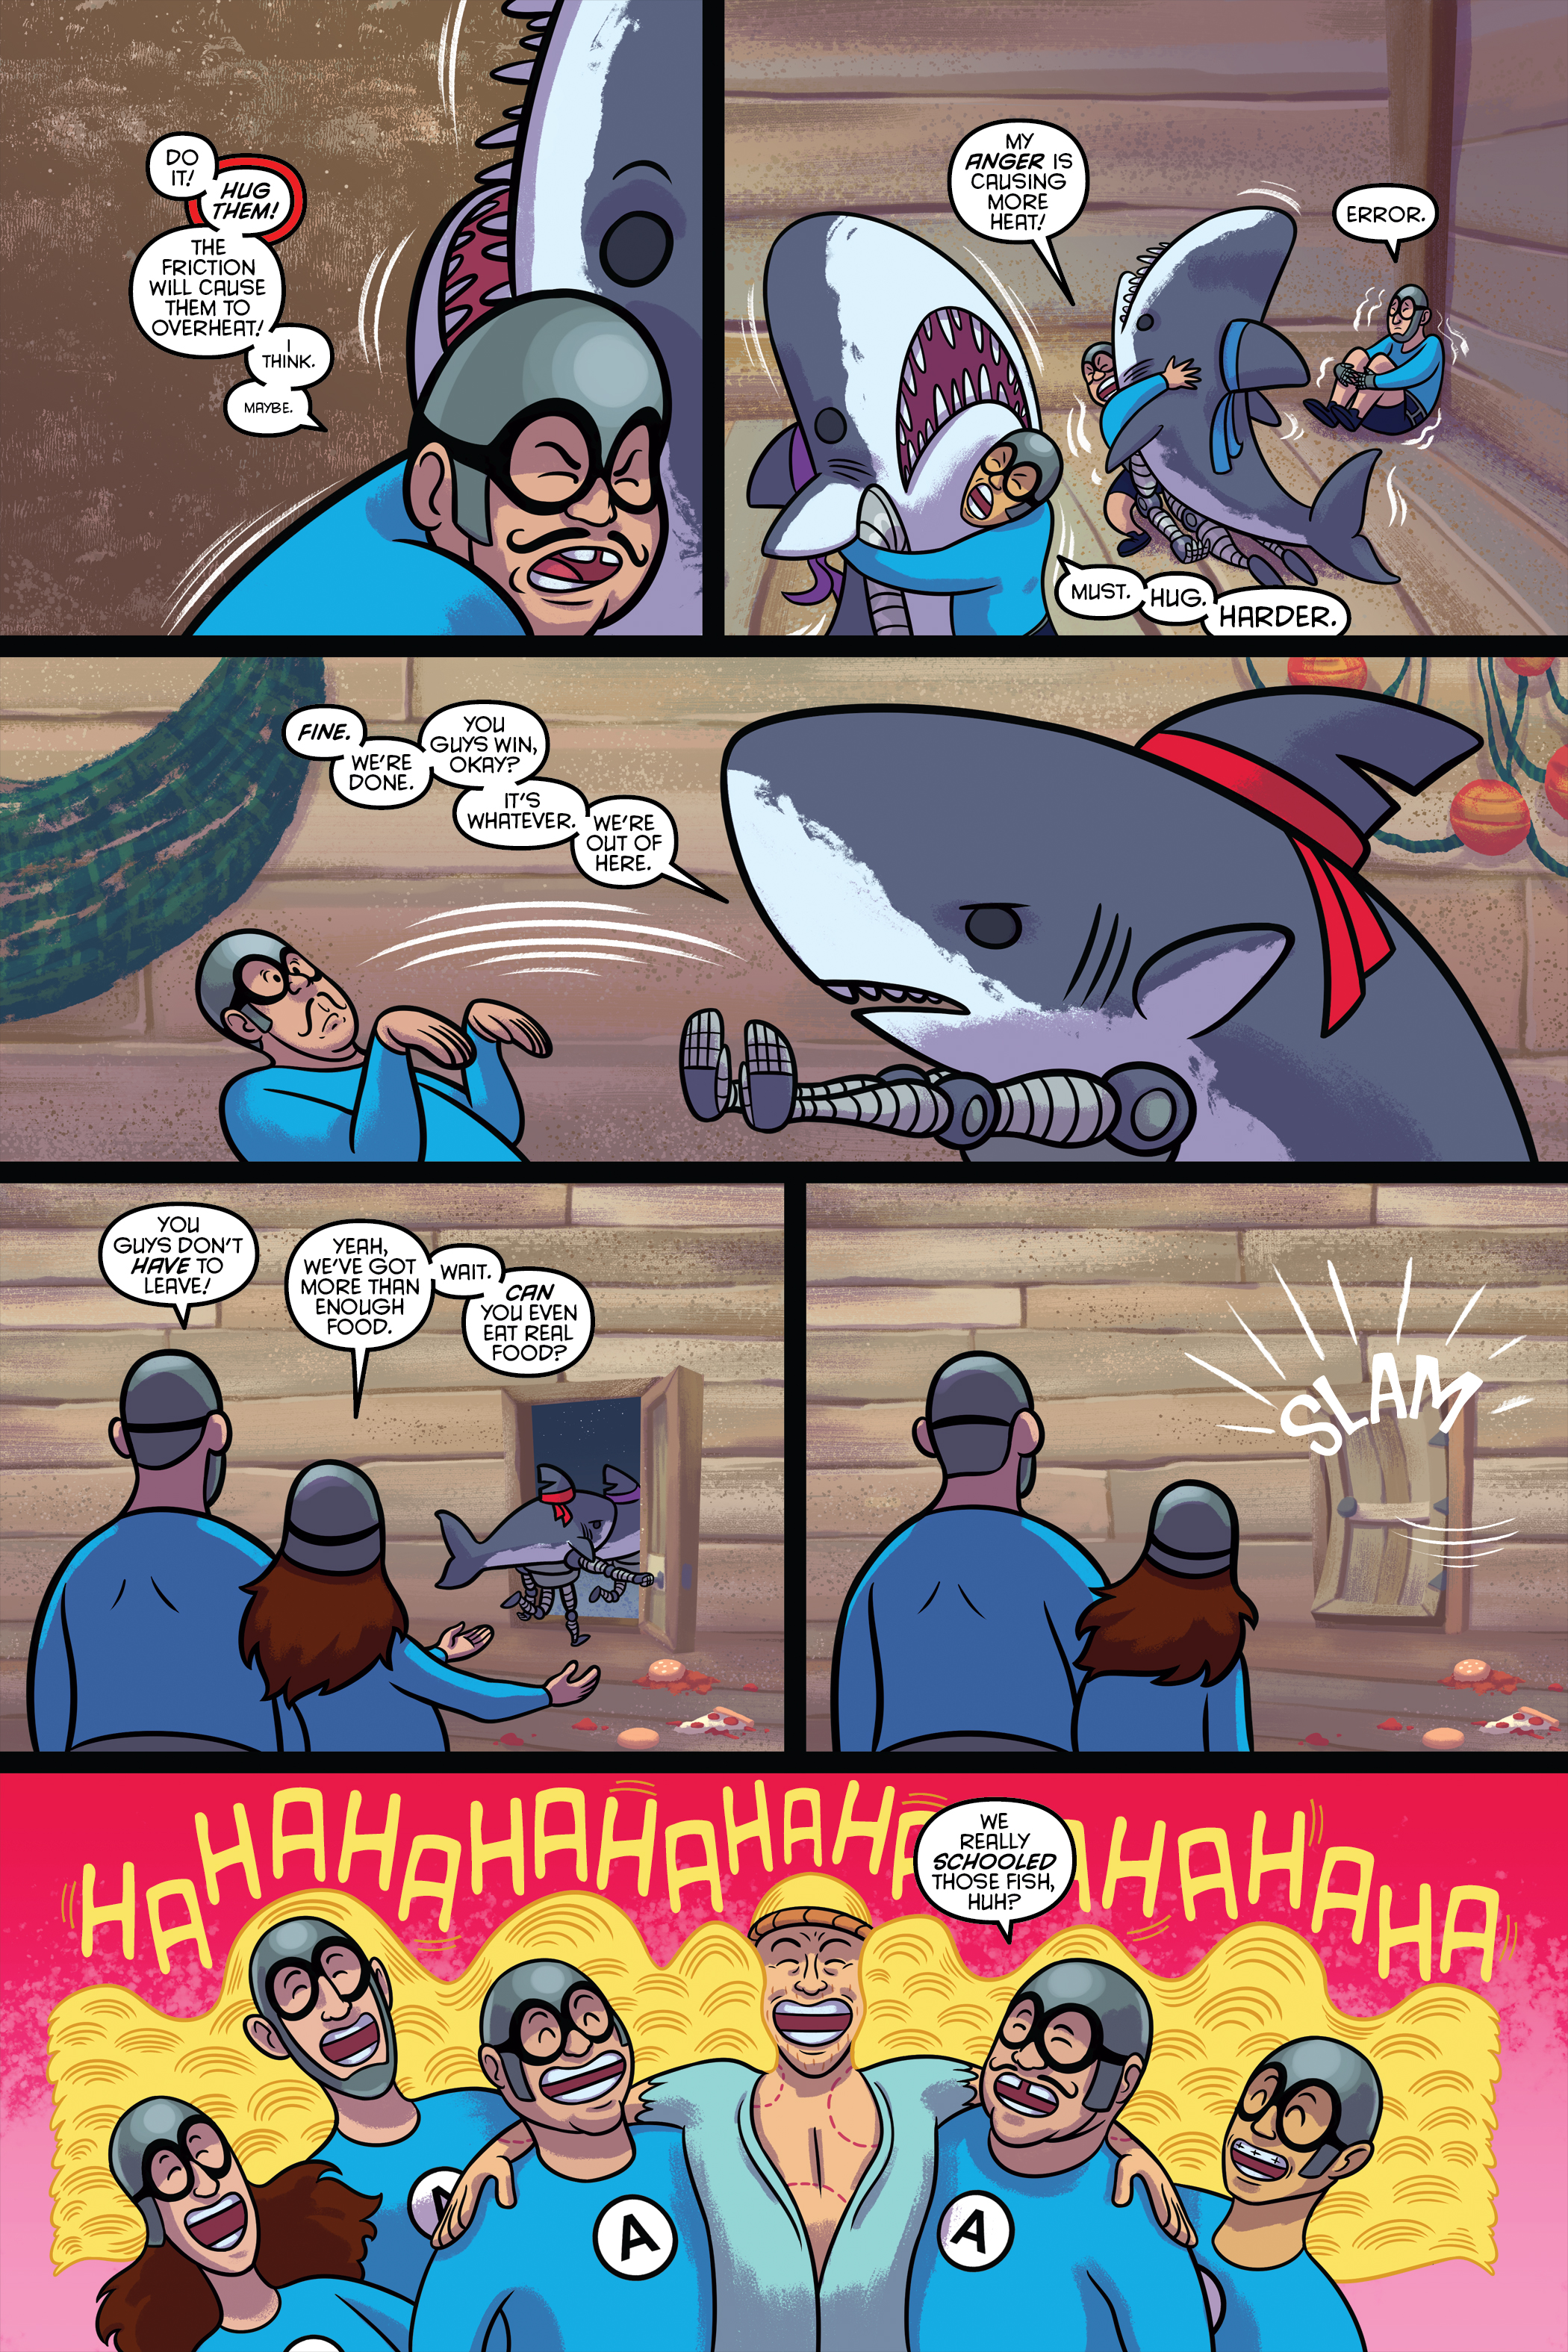 "Written by: Chas! Pangburn Art by: Axur Eneas and Osvaldo Pasillas (Page 5's Background) Letters by: Chas! Pangburn  In January of 2016, Alterna Comics tweeted about wanting to see an Aquatbats comic. After an enormous amount of ""likes"" and ""retweets,"" Peter Simeti (founder/owner of Alterna) found himself in a discussion with the band. Months passed and nothing really came to fruition. Being a huge fan of the band–and their tv show–I wanted to move things along.  So I made a proof-of-concept pitch with Axur Eneas. You know, the natural thing to do.  Our pitch was a direct continuation of ""The Aquabats! Super Show!"" Being true to the tv iteration of the band, different art styles would pop up in every issue. This would've been done through the help of various creators from around the world. So, in a way, it would've been a fun lil mixtape anthology.  While nothing really came of this short, I'm still immensely happy about how things turned out."